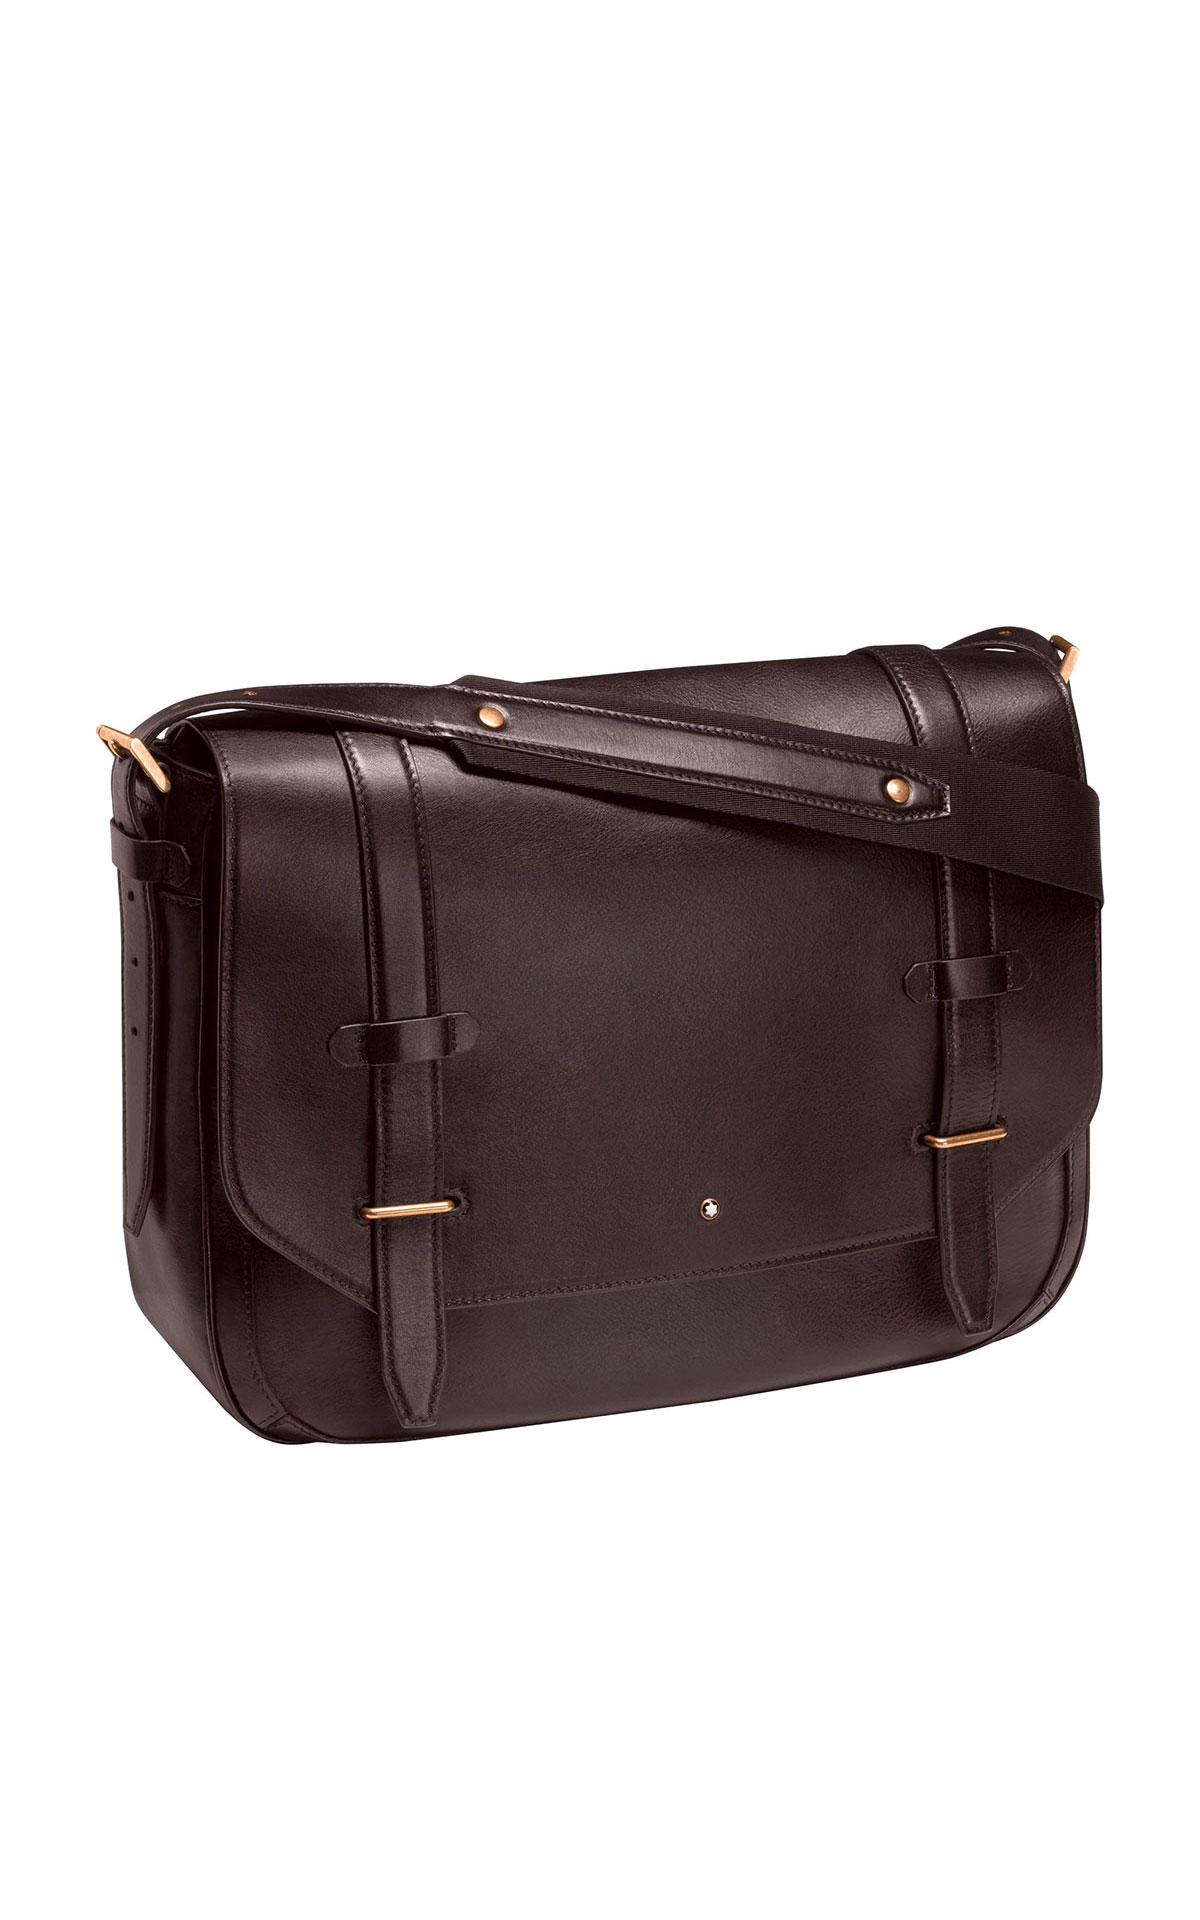 Montblanc Messenger, Dark Brown from Bicester Village